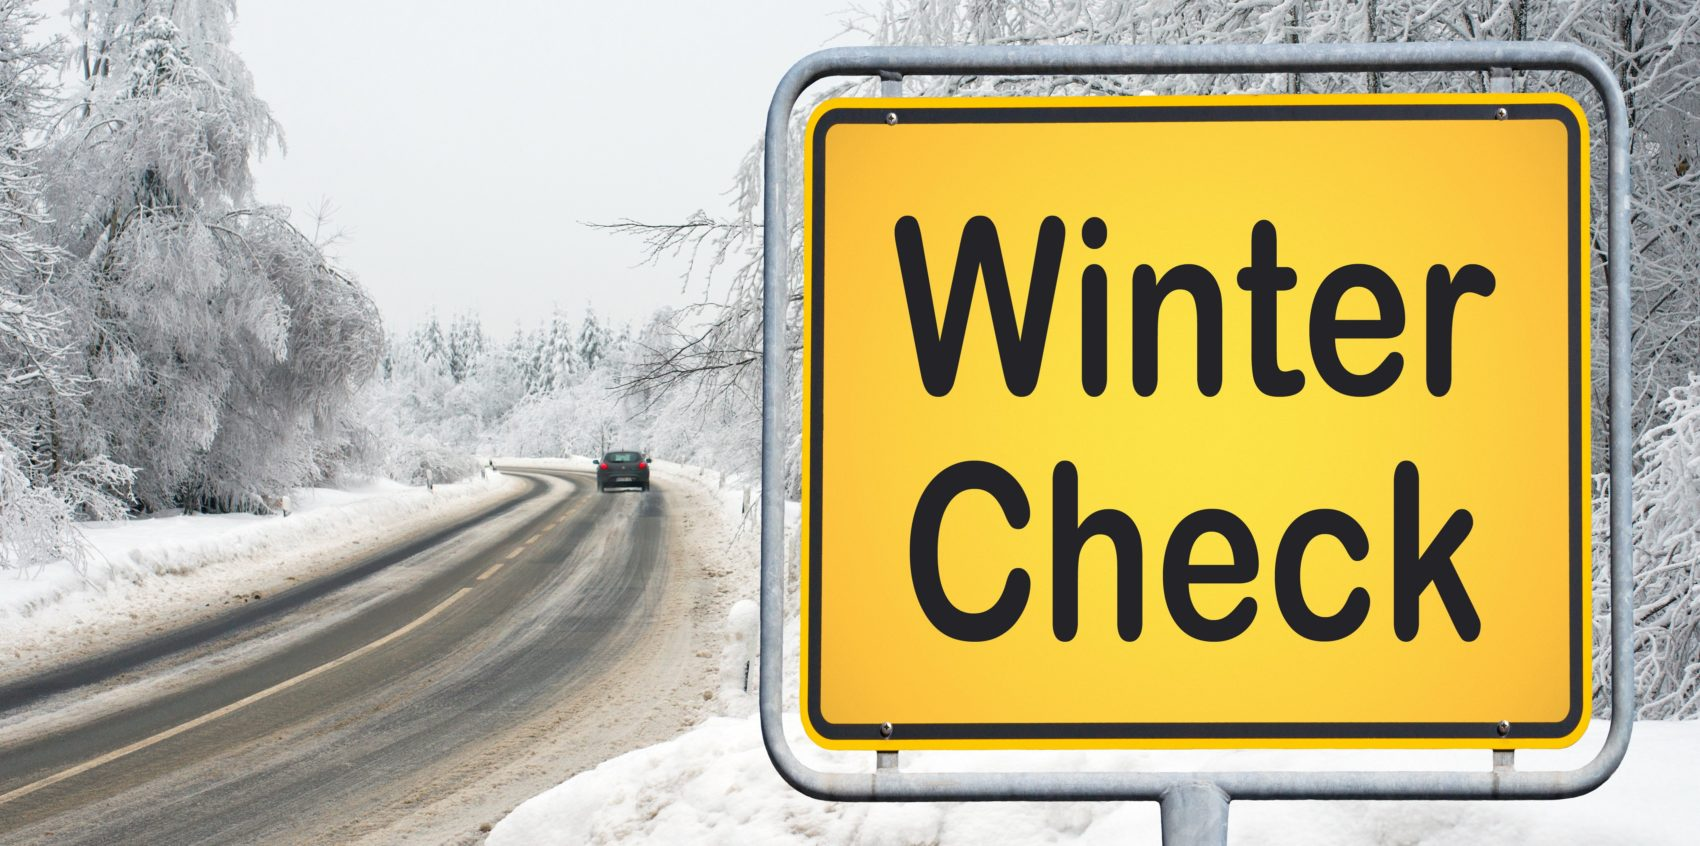 Winter Check - traffic sign with road and snow